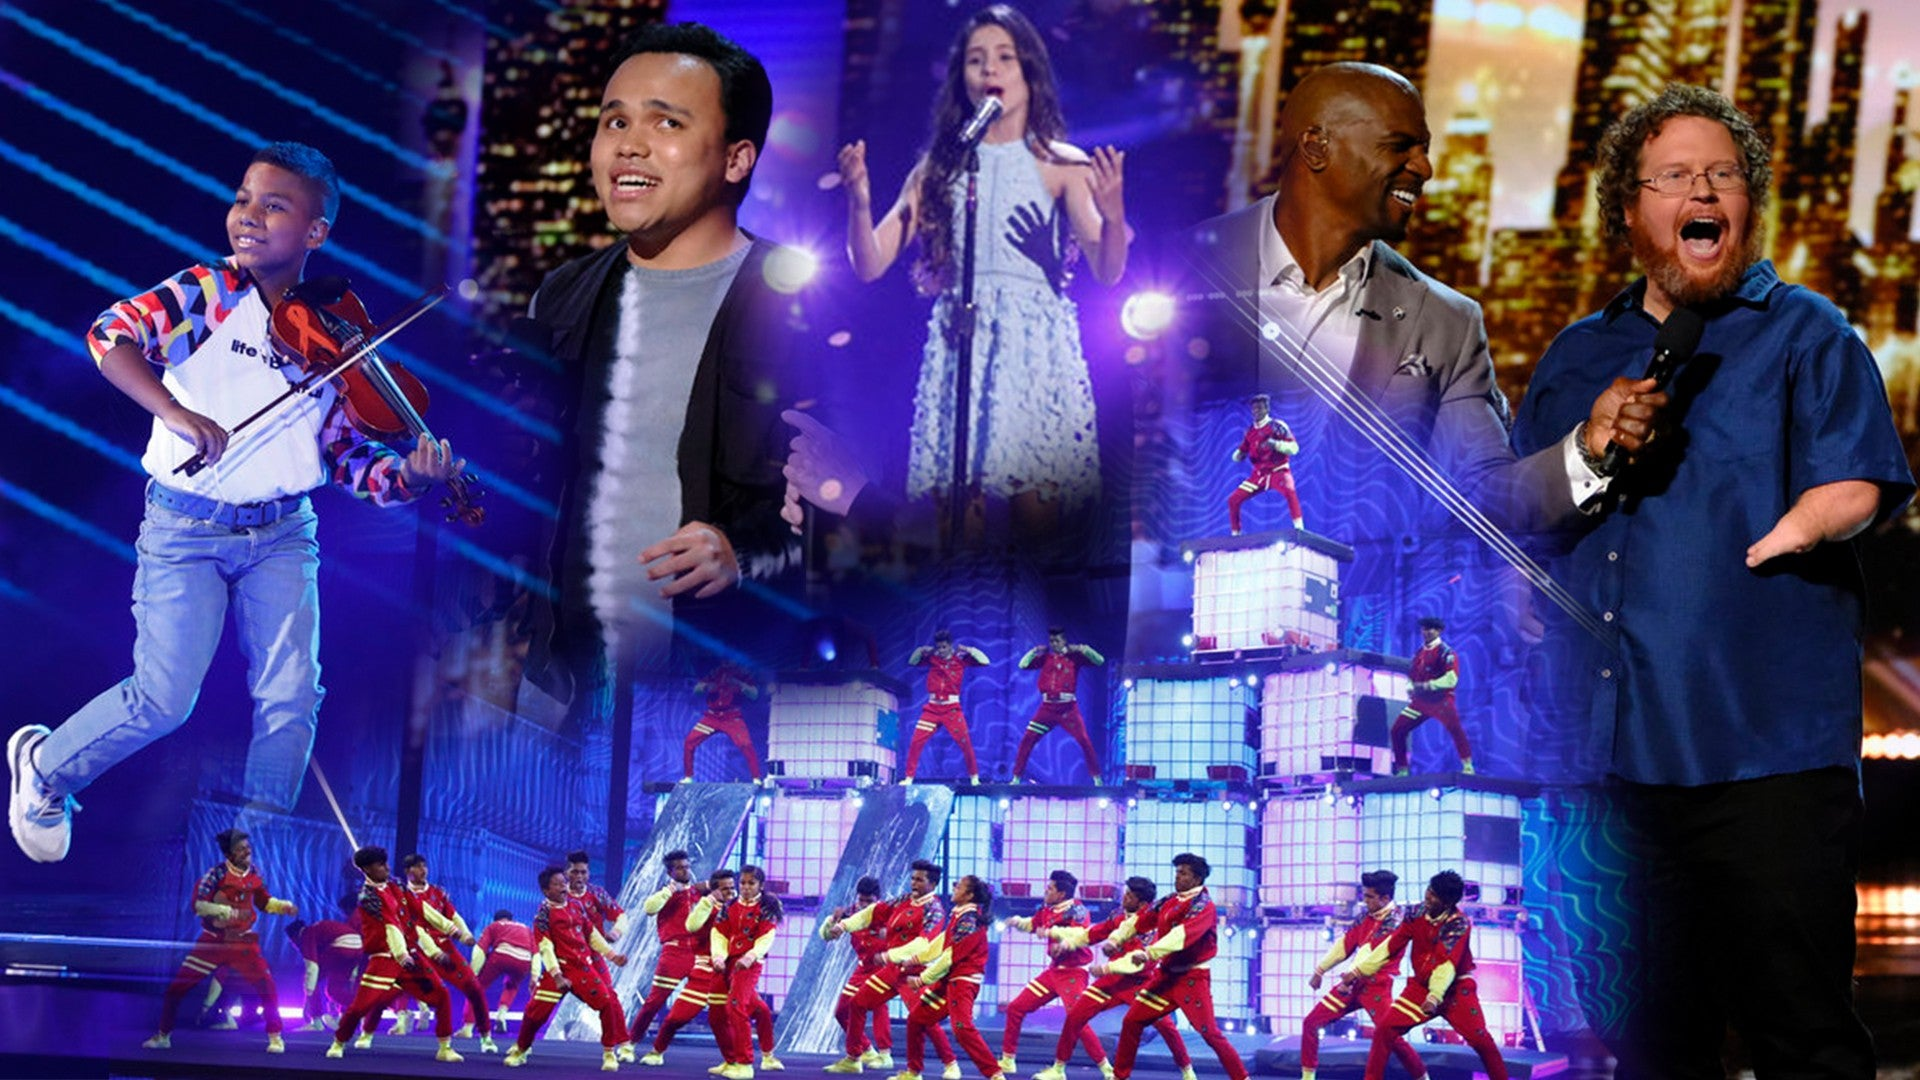 America S Got Talent See Who Became A Frontrunner And Who Fell